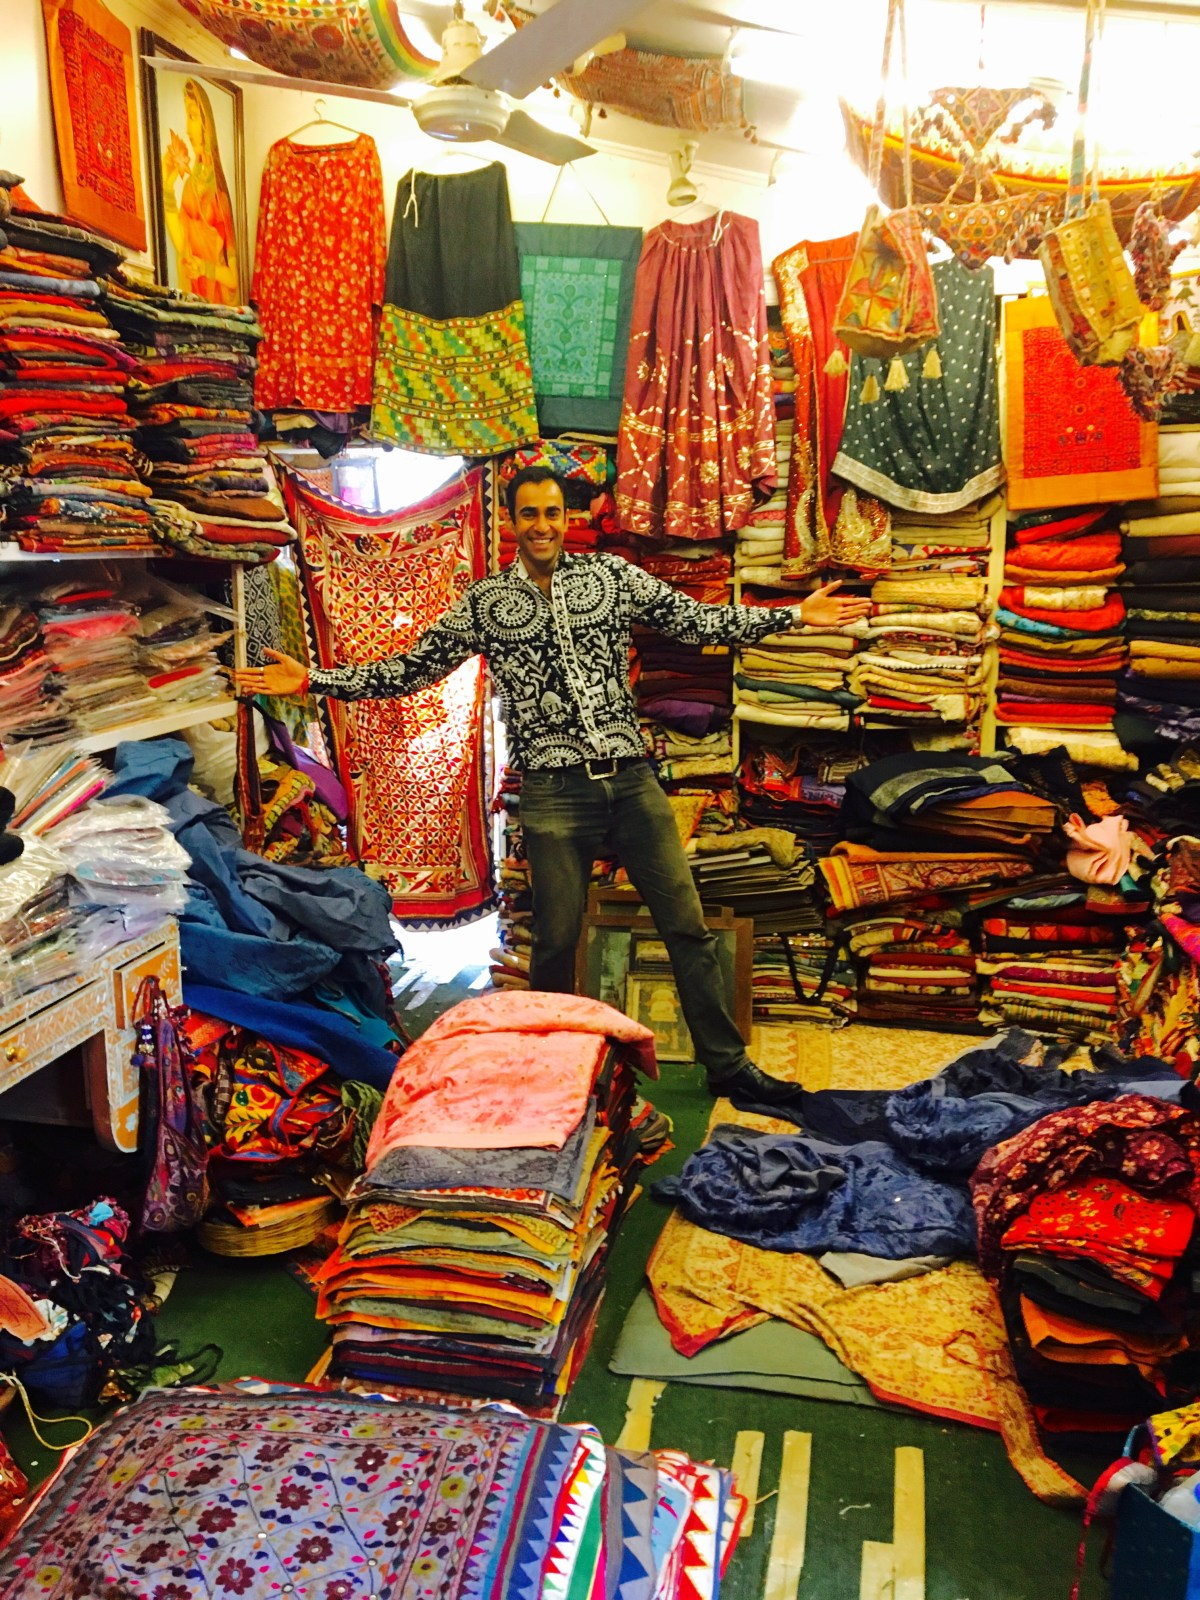 One of the shop owners in Udaipur